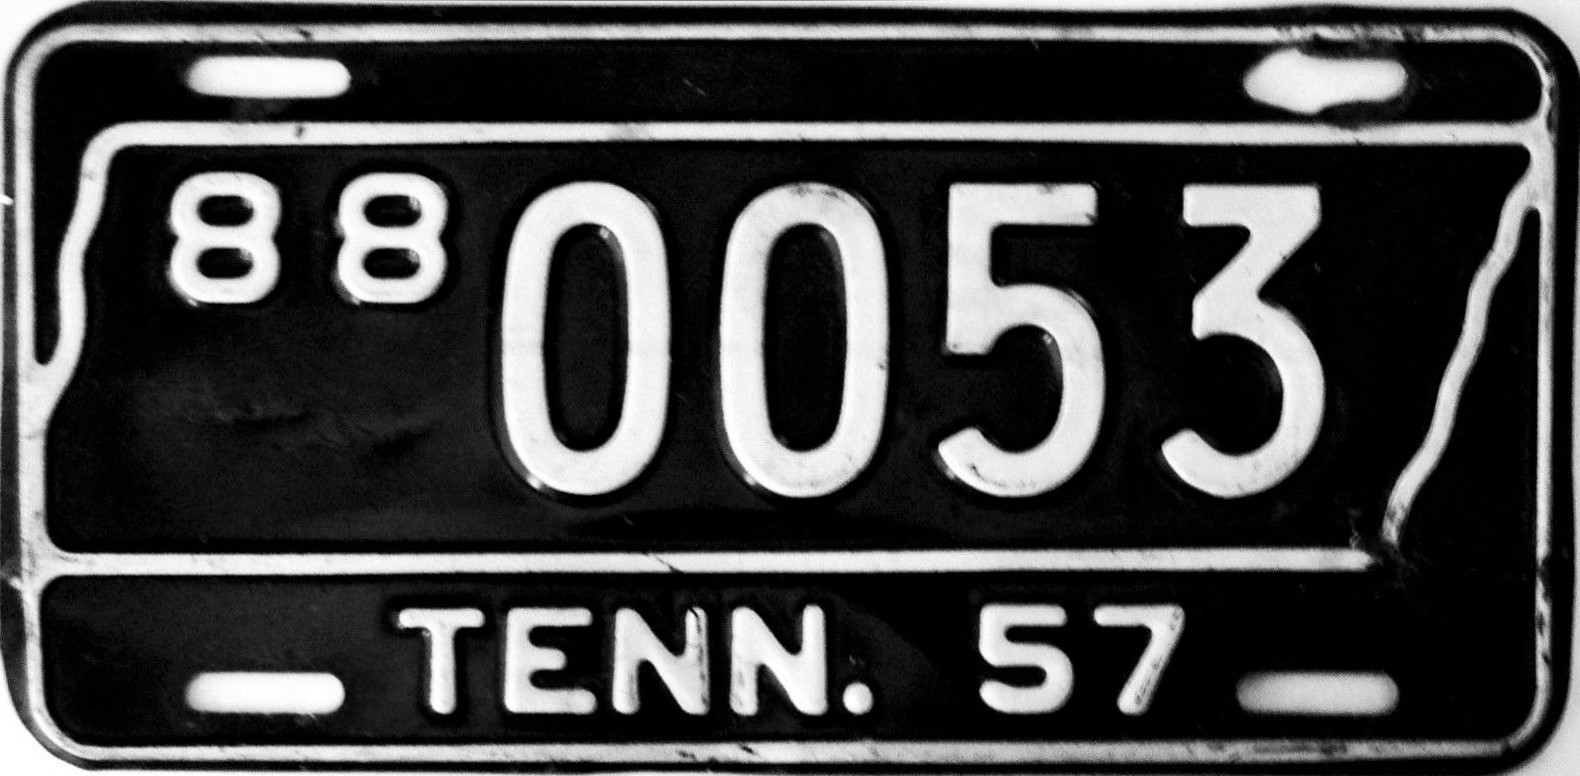 Delighted Tenn License Plate Ideas - Classic Cars Ideas - boiq.info